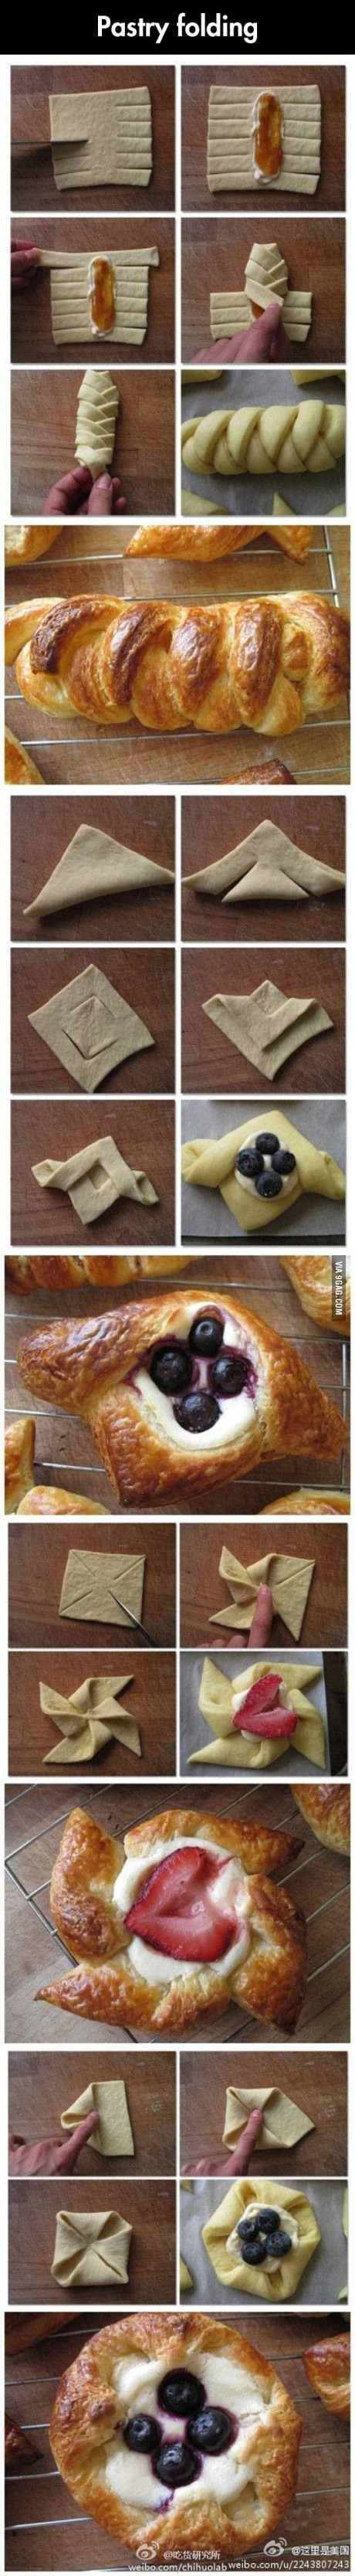 baking and different ways to fold pastries. Easy pastry and bread folding instructions.